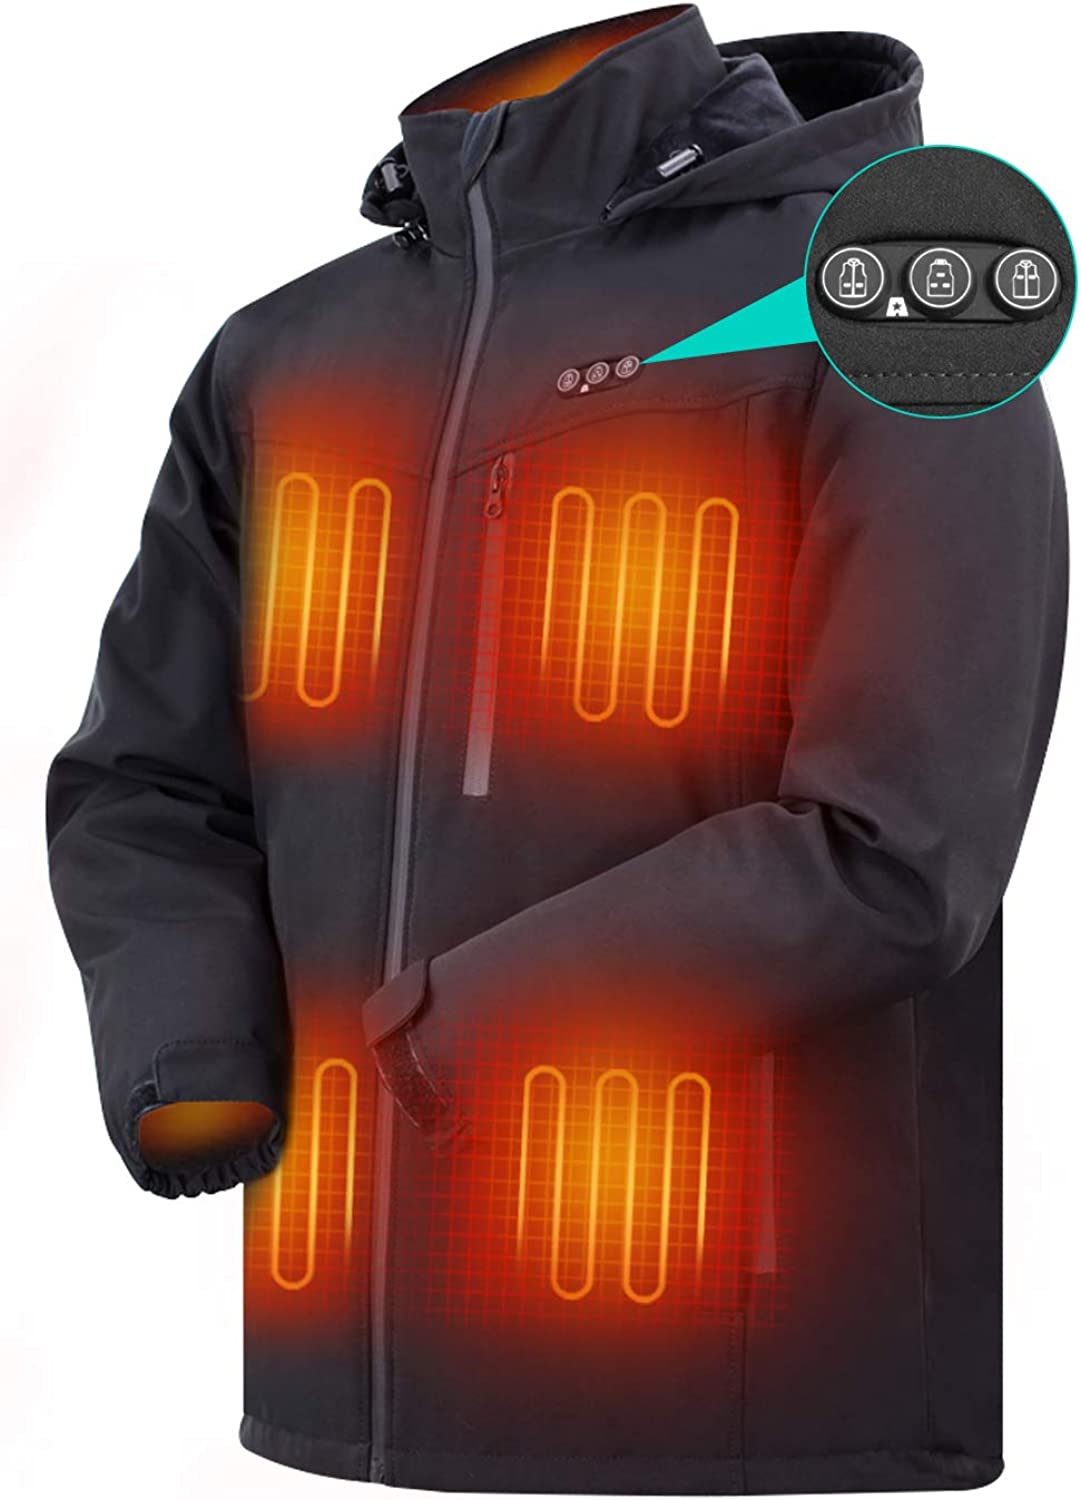 ARRIS Heated Jacket for Men, Electric Warm Heating Coat with 7.4V Rechargable Battery/8 Heating Areas/Phone Charging Black …